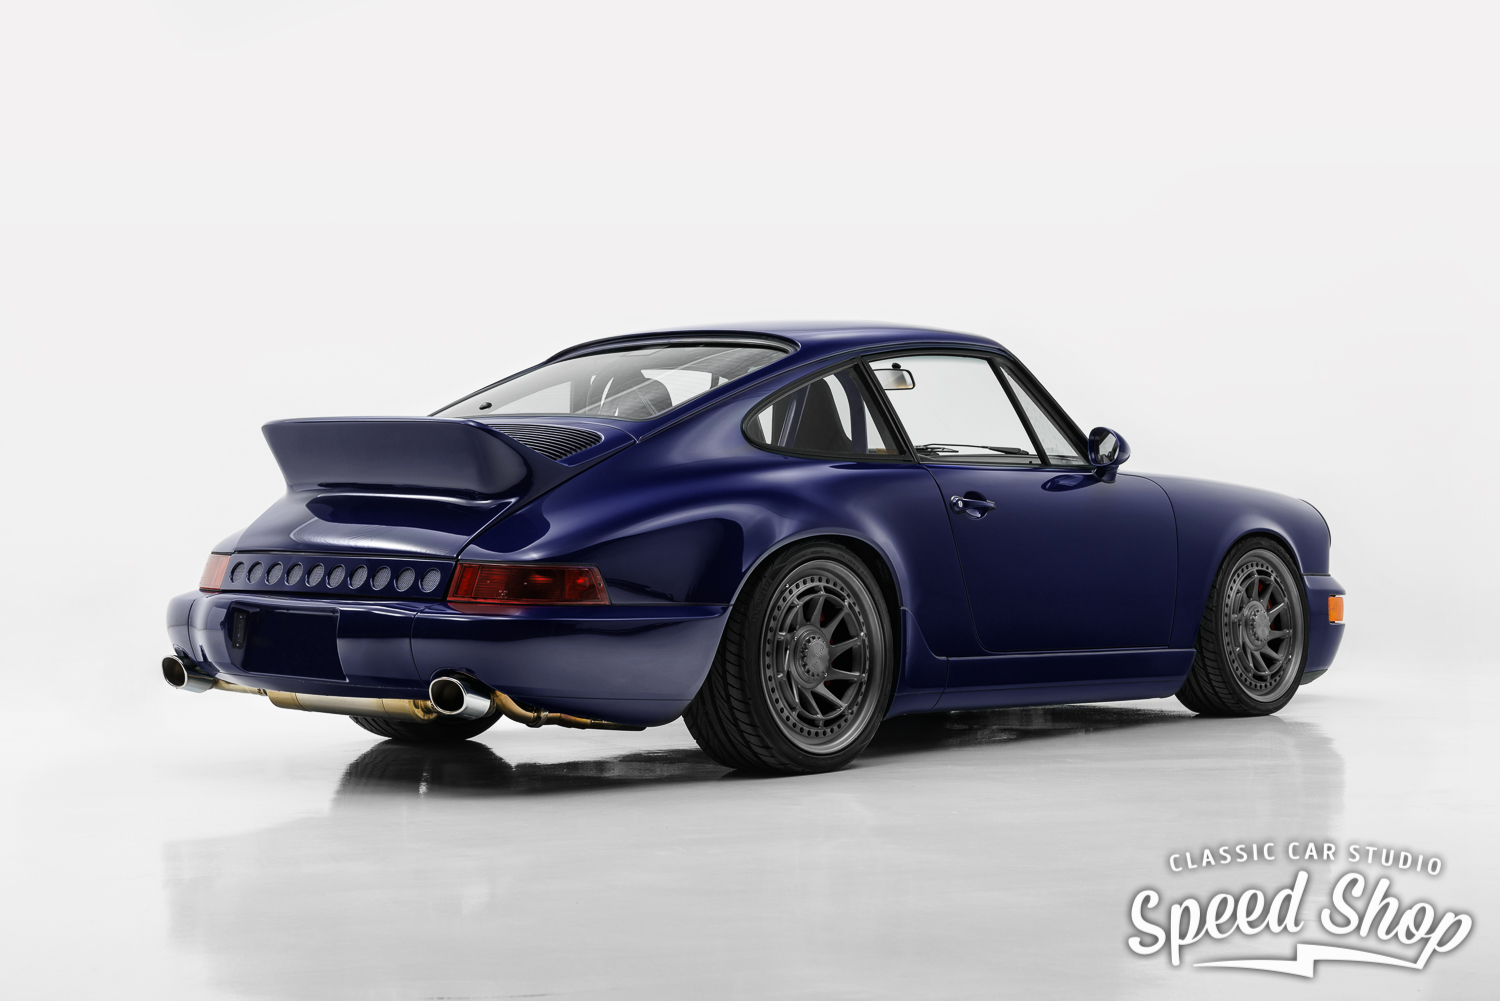 1990 Porsche 964 Ccs Speed Shop